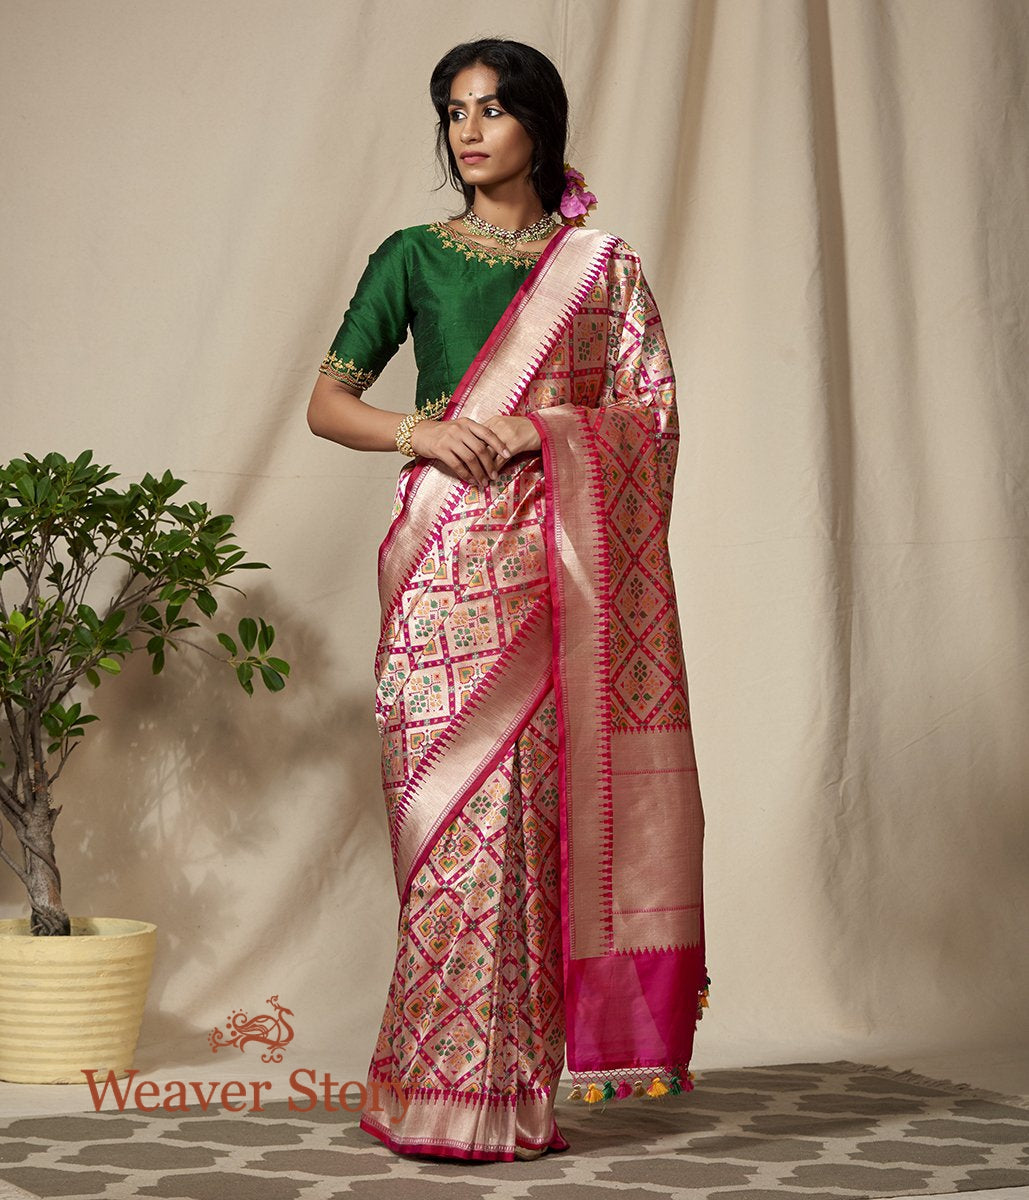 Handwoven Pink Banarasi Patola Saree with Zari Base